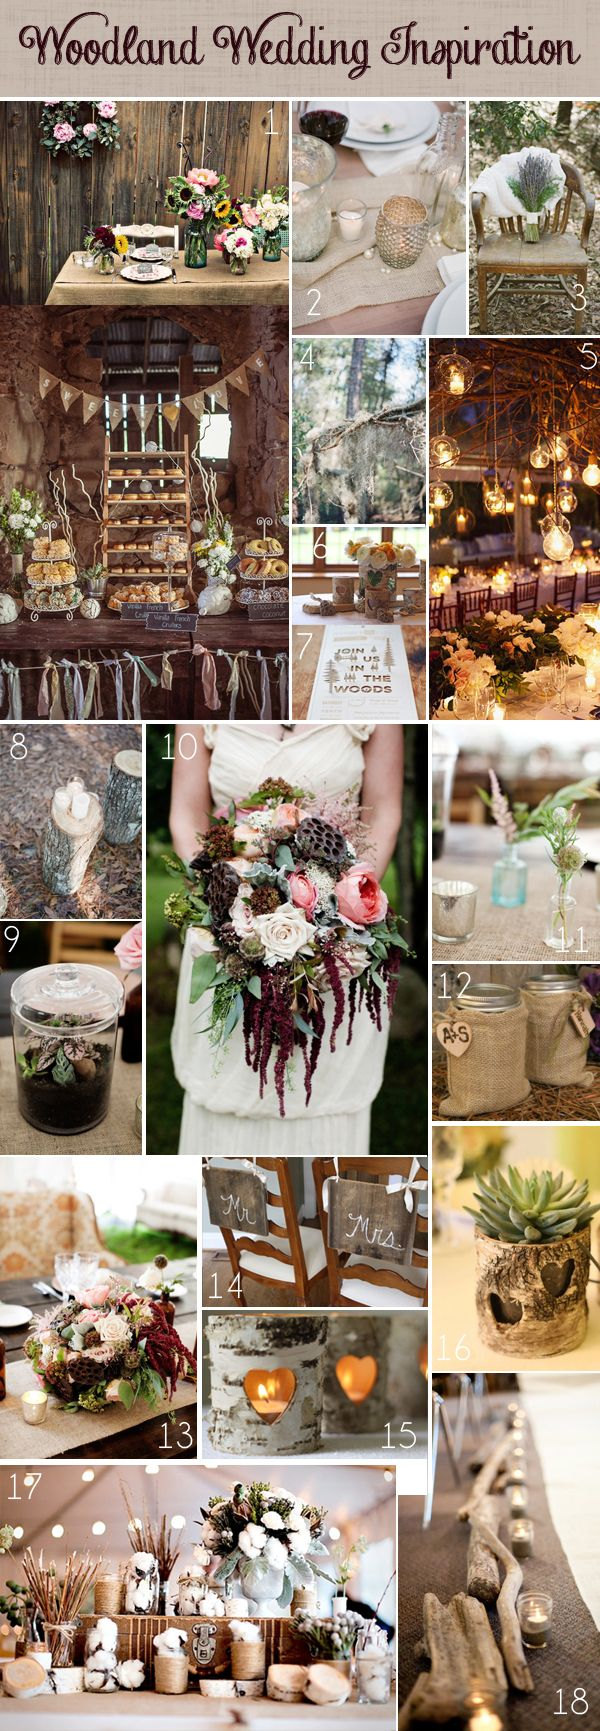 woodland wedding ideas                                                                                                                                                                                 More